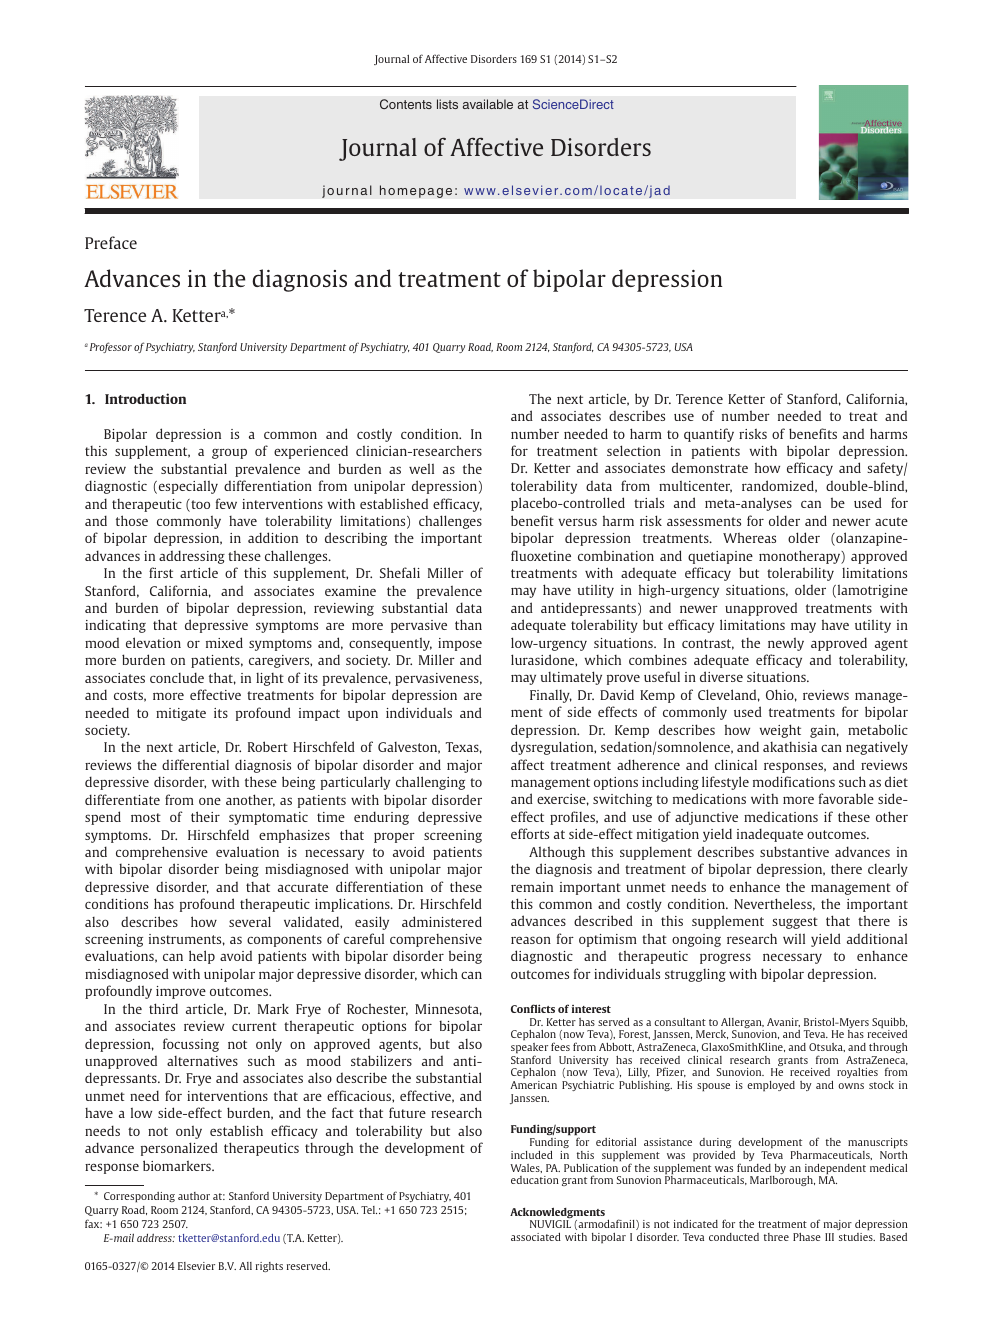 Advances in the diagnosis and treatment of bipolar